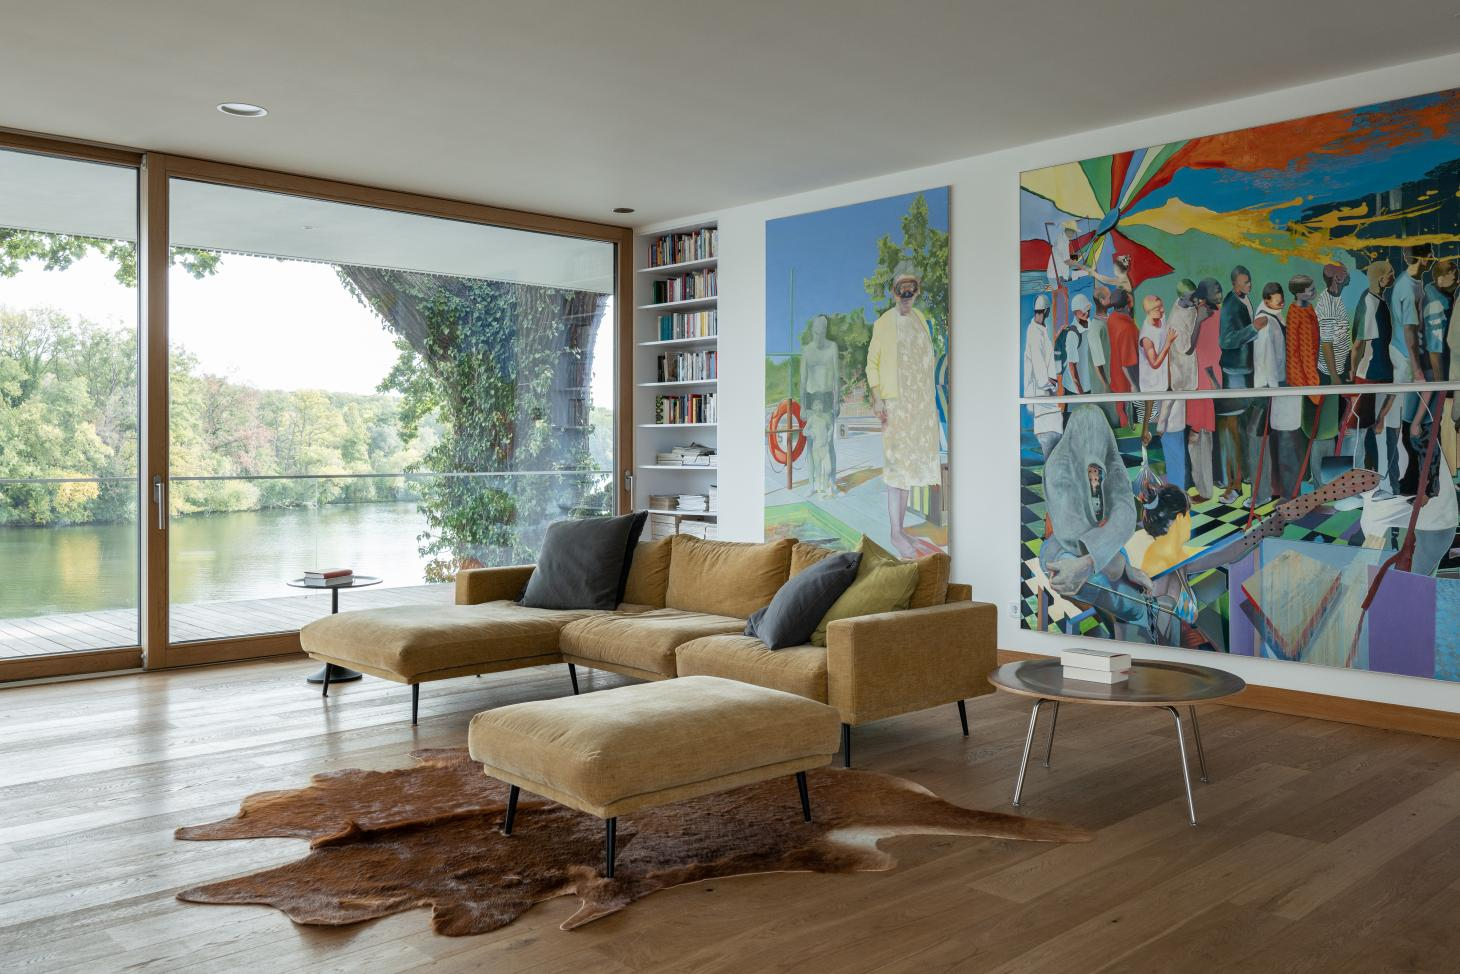 Carlos Zwick's family house has stunning lakeside views from all the principal reception rooms